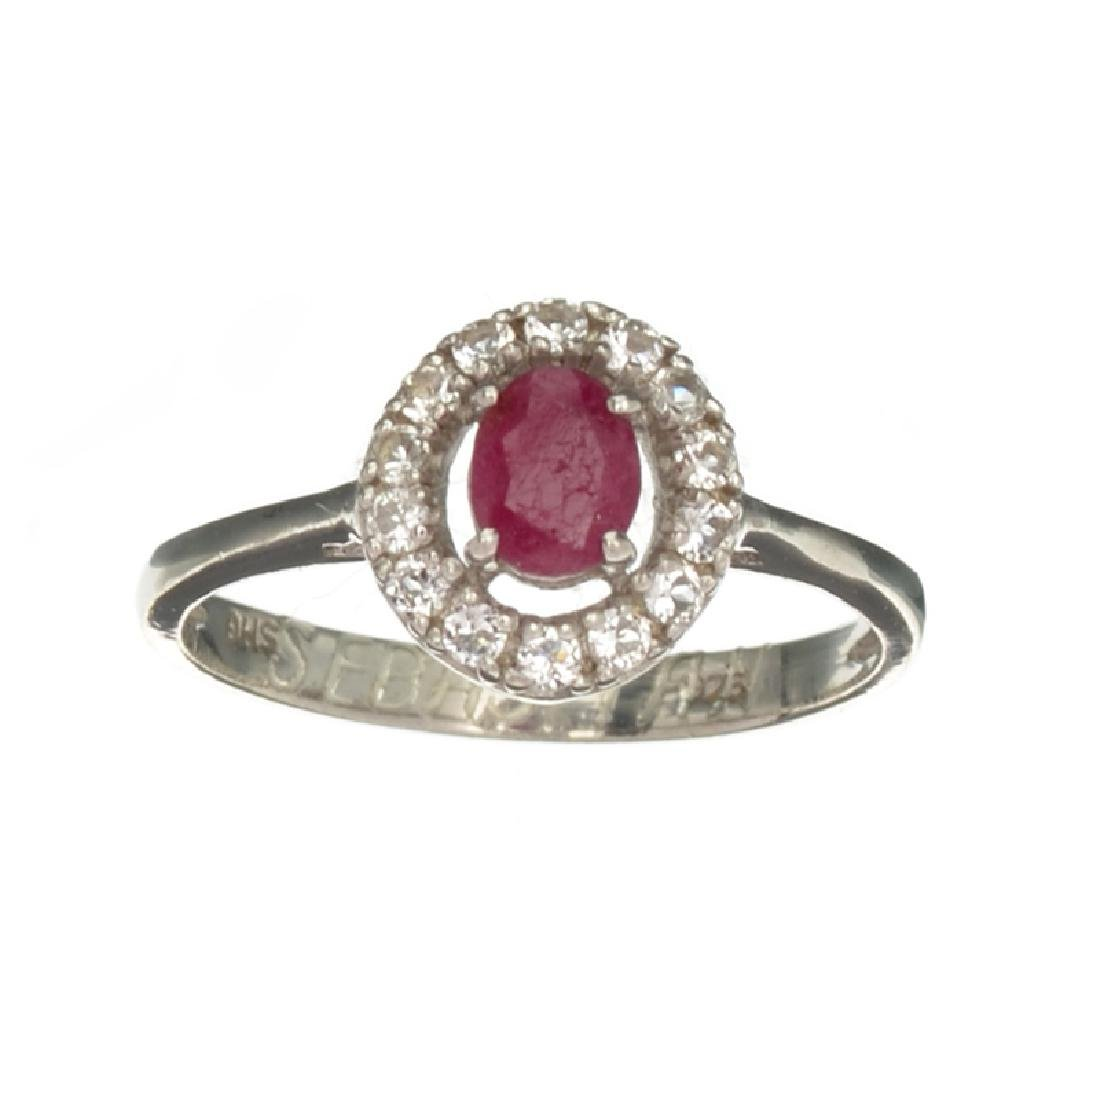 APP: 1.2k Fine Jewelry 0.50CT Ruby And Colorless Topaz